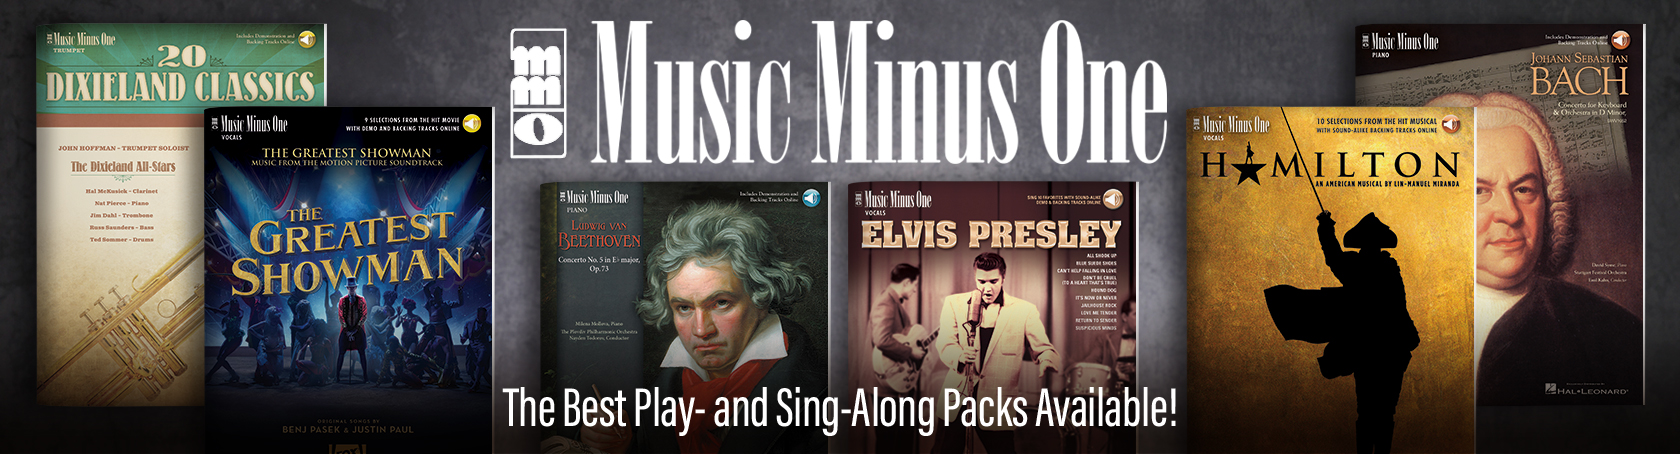 Music Minus One - The Best Play- and Sing-Along Packs Available